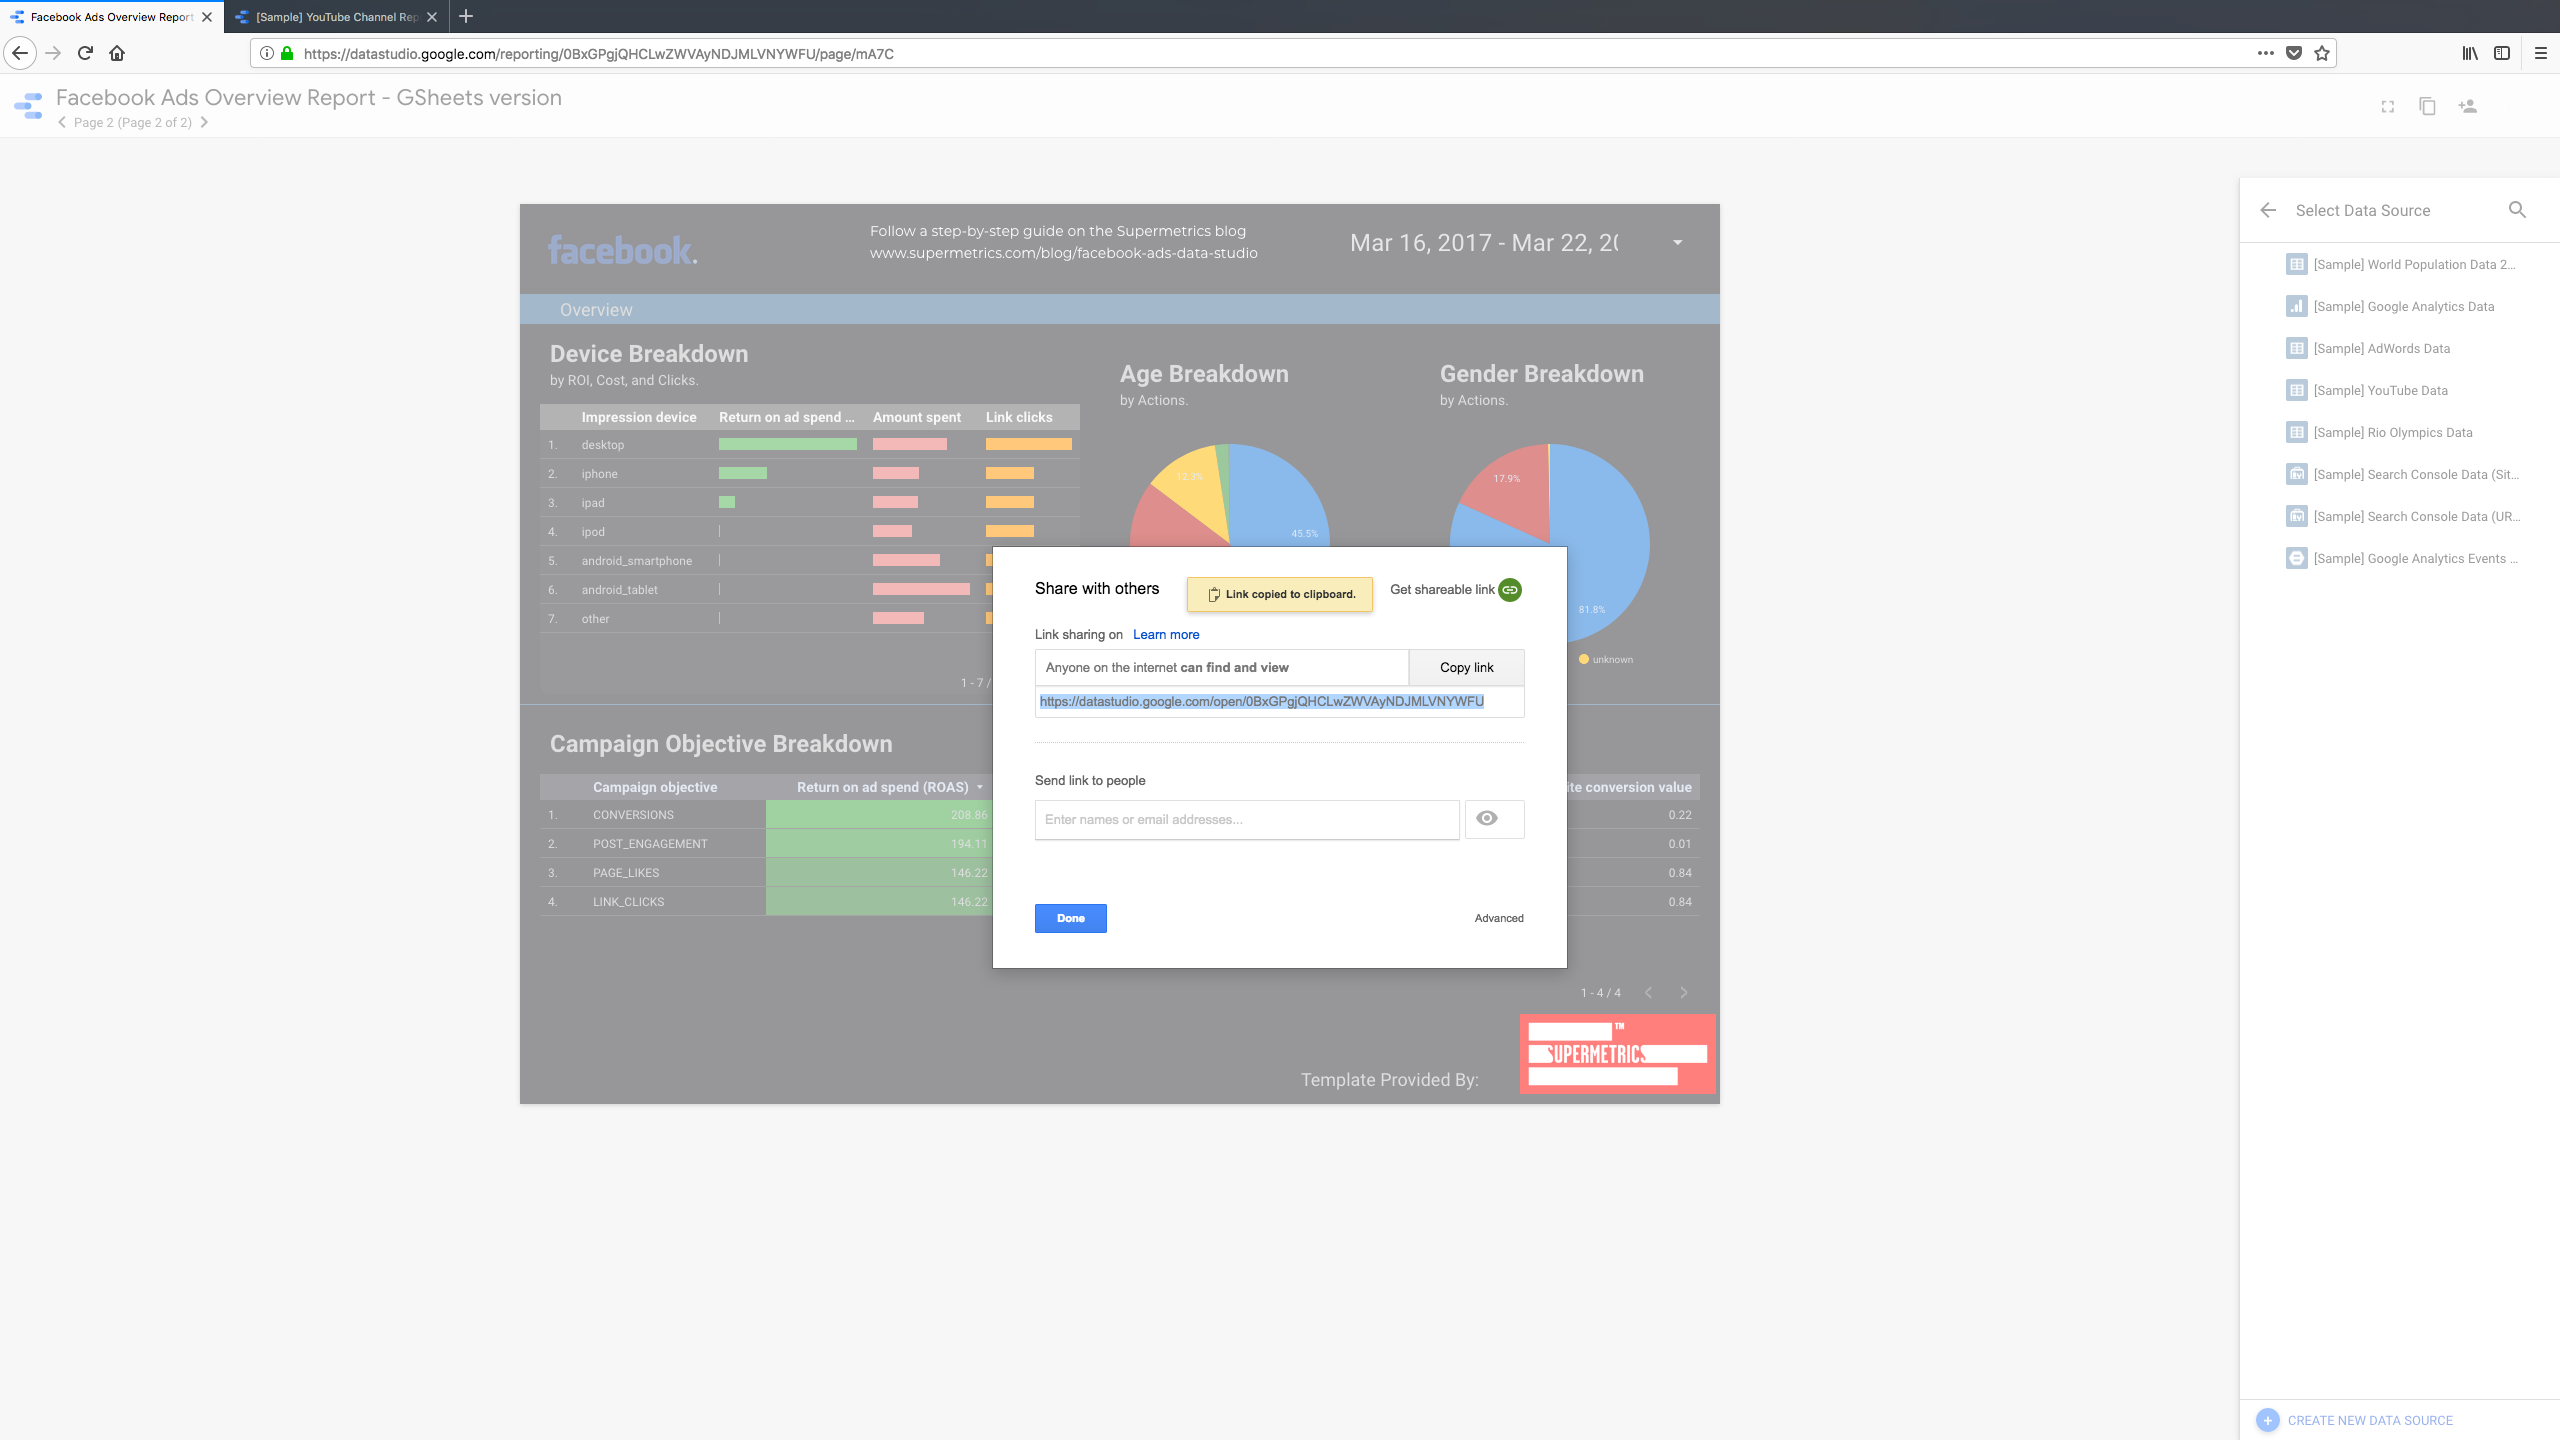 Google Data Studio Software - Reports can be shared with others via a sharable URL link that can be copied and pasted, or sent to contacts via email